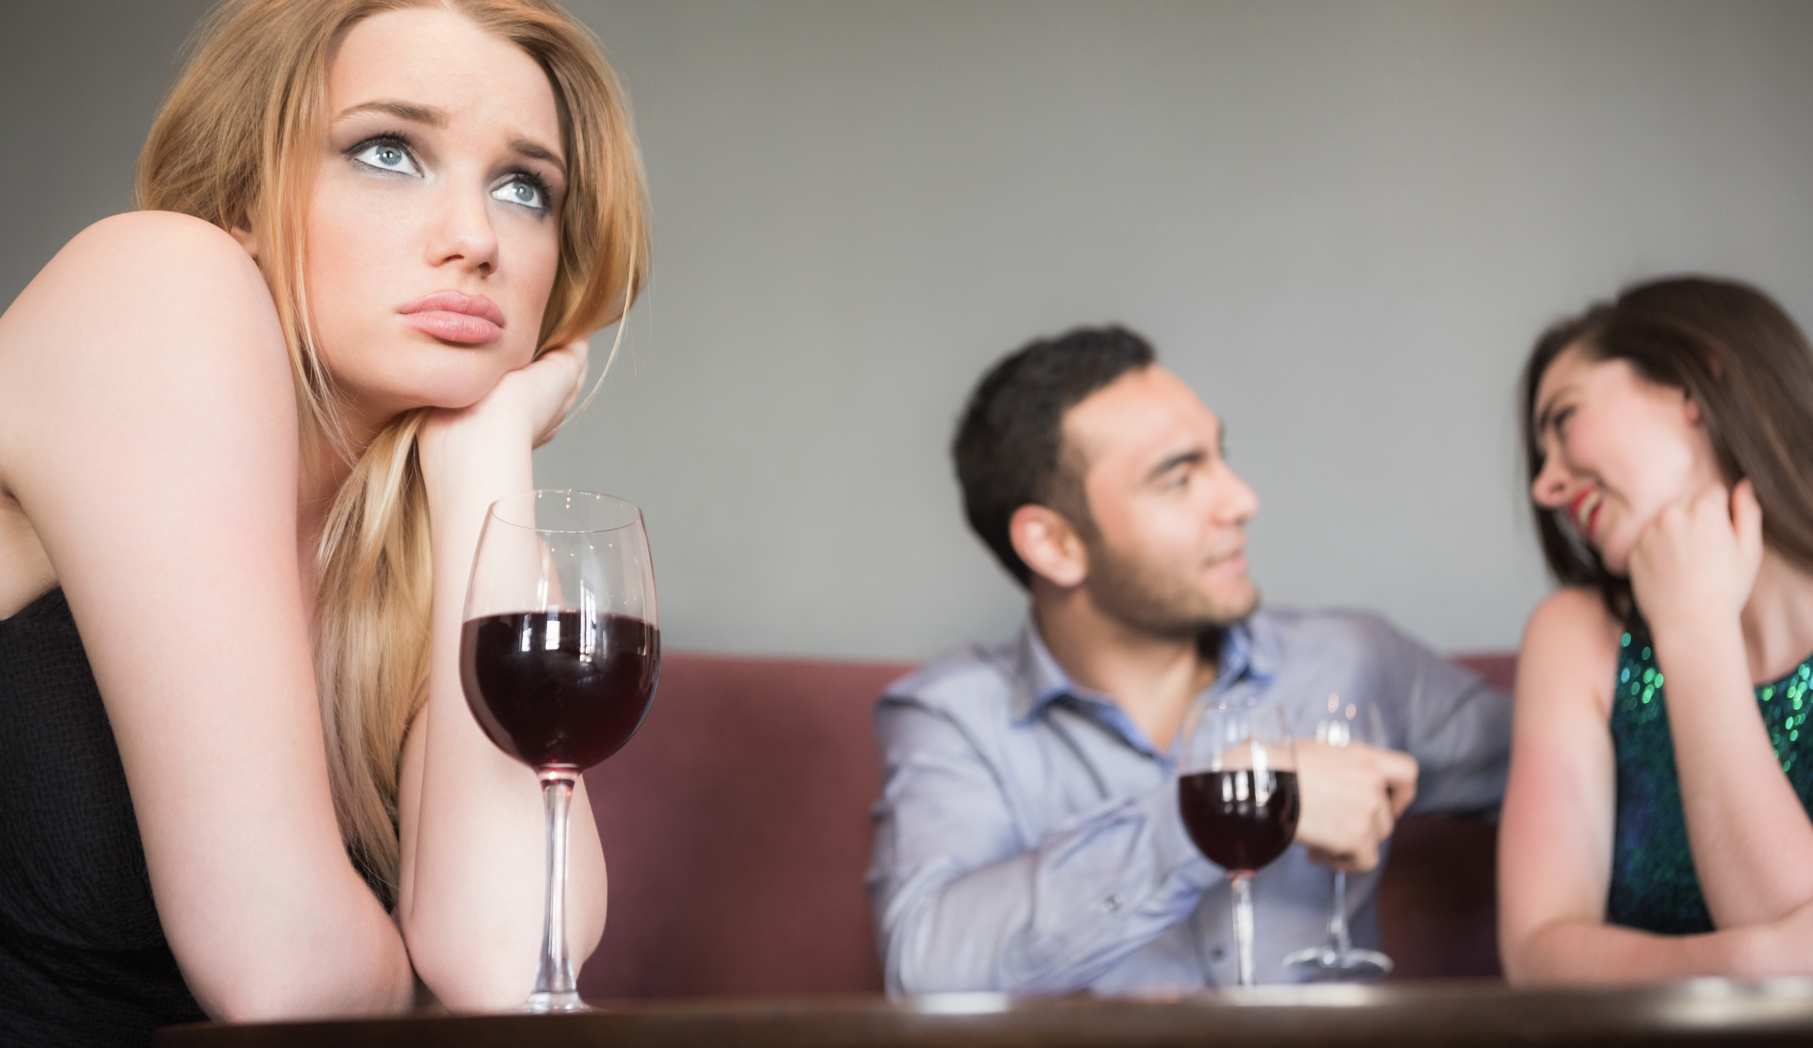 16 Reasons to Not Date Your Friend's Ex